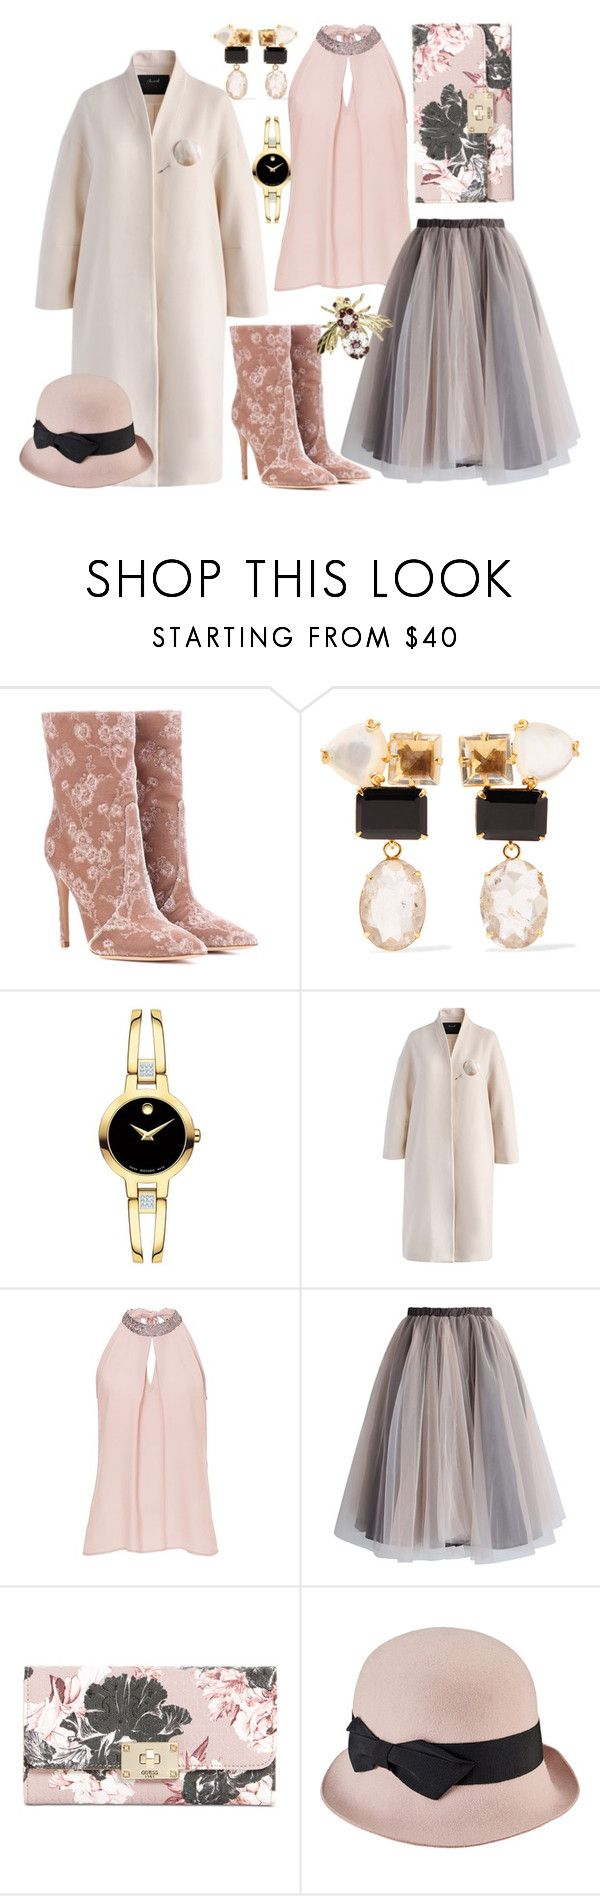 """Elegant floral"" by okcini9 ❤ liked on Polyvore featuring Gianvito Rossi, Bounkit, Movado, Chicwish, Vera Mont, GUESS, San Diego Hat Co., Vintage, floralprint and polyvorefashion"